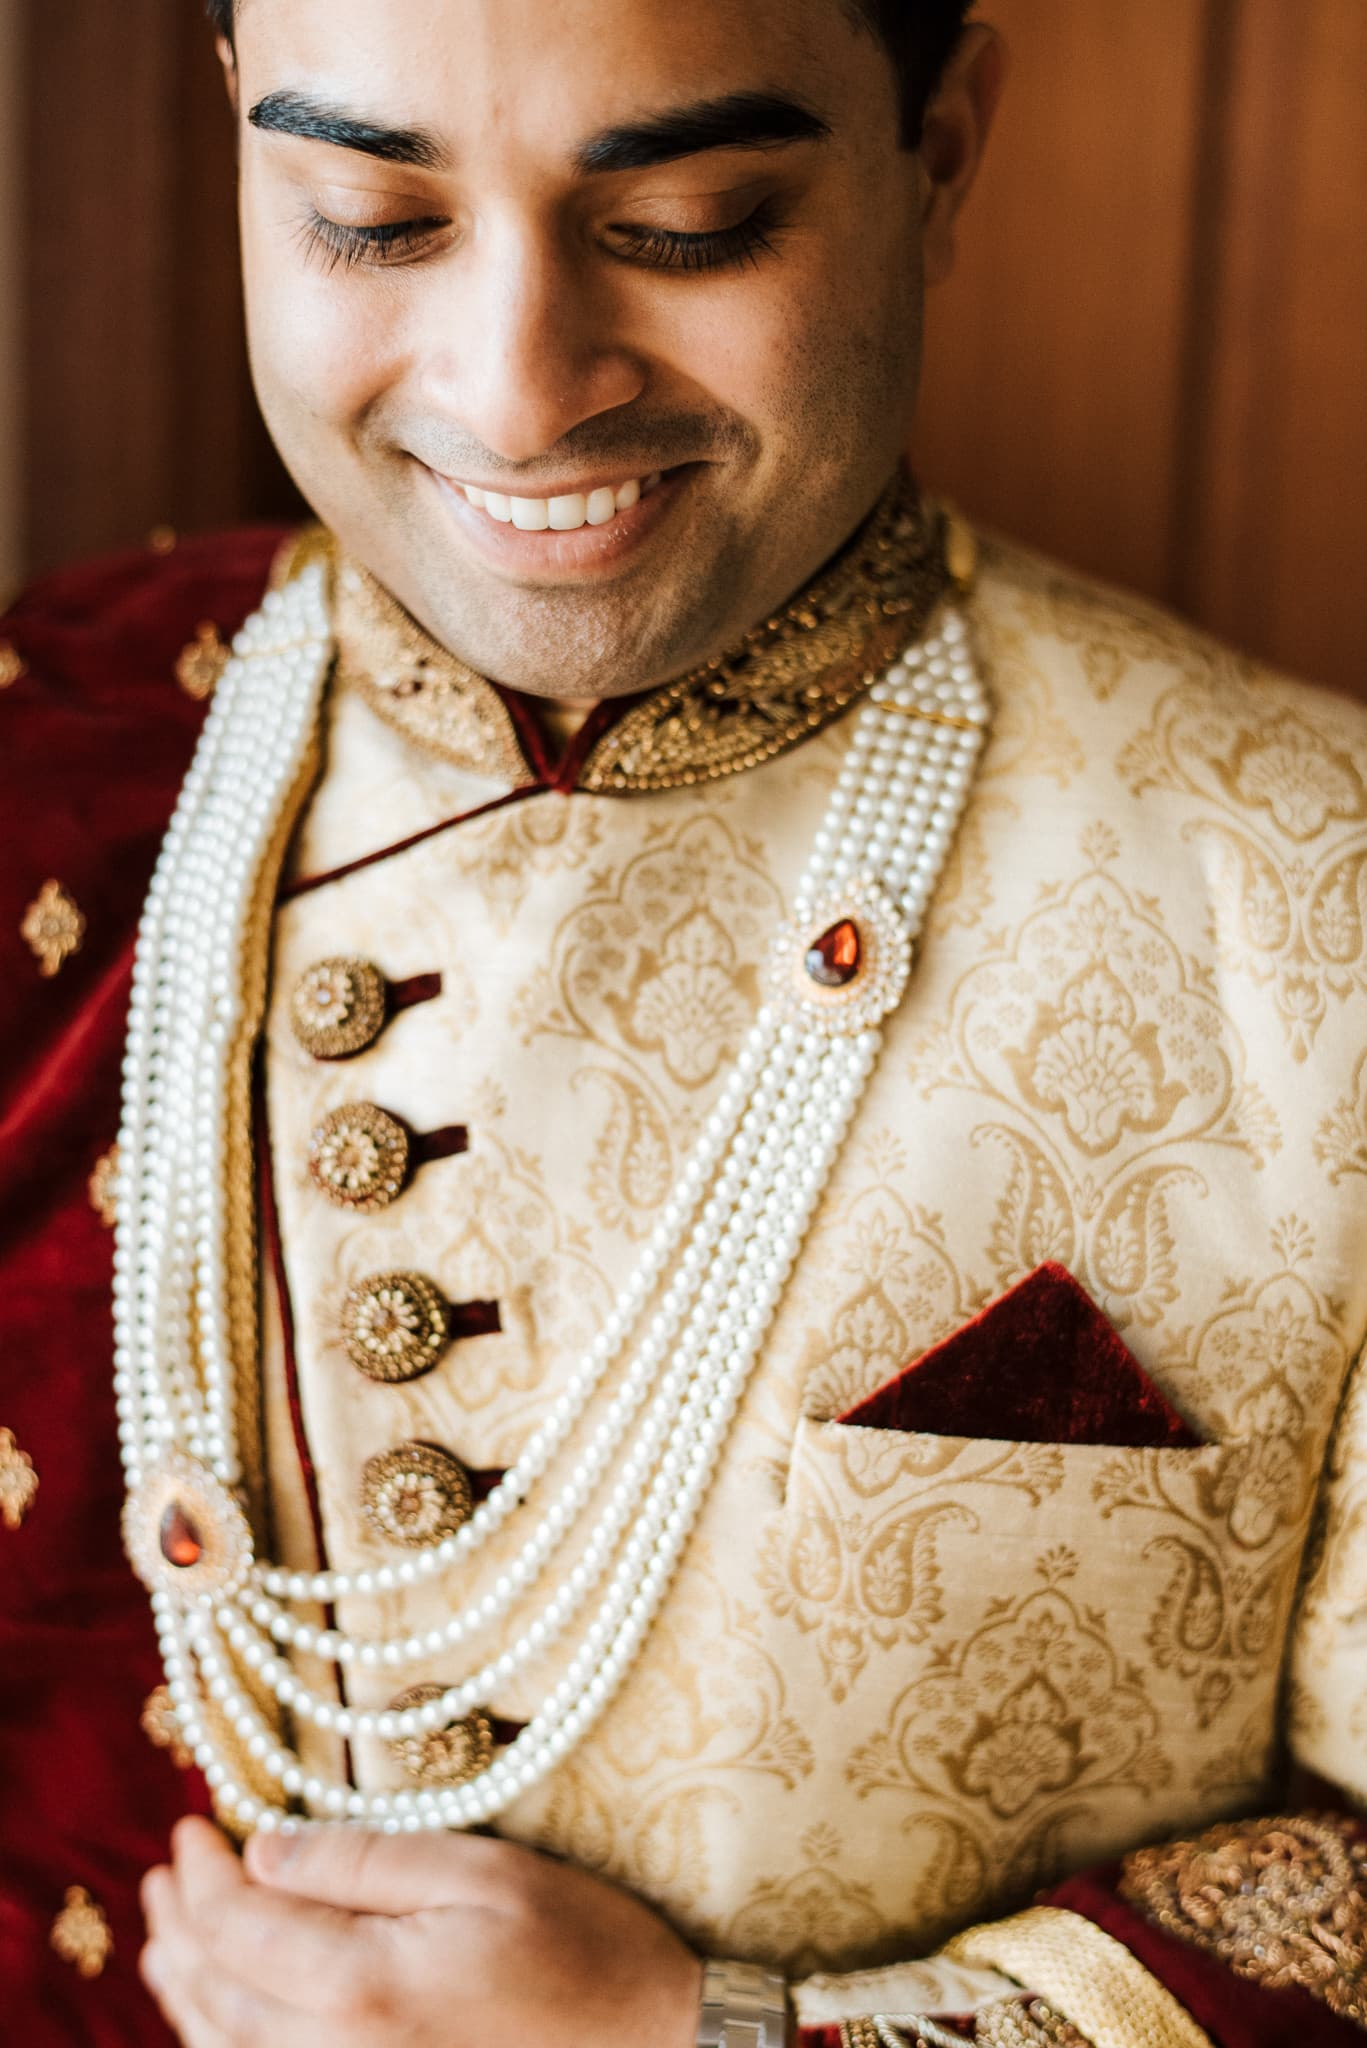 Melbourne groom, Rohit's traditional Indian wedding outfits were purchased from Manyavar and complemented Claire's bridal wear exceptionally well. He wore a beautiful sherwani suit on the wedding day.